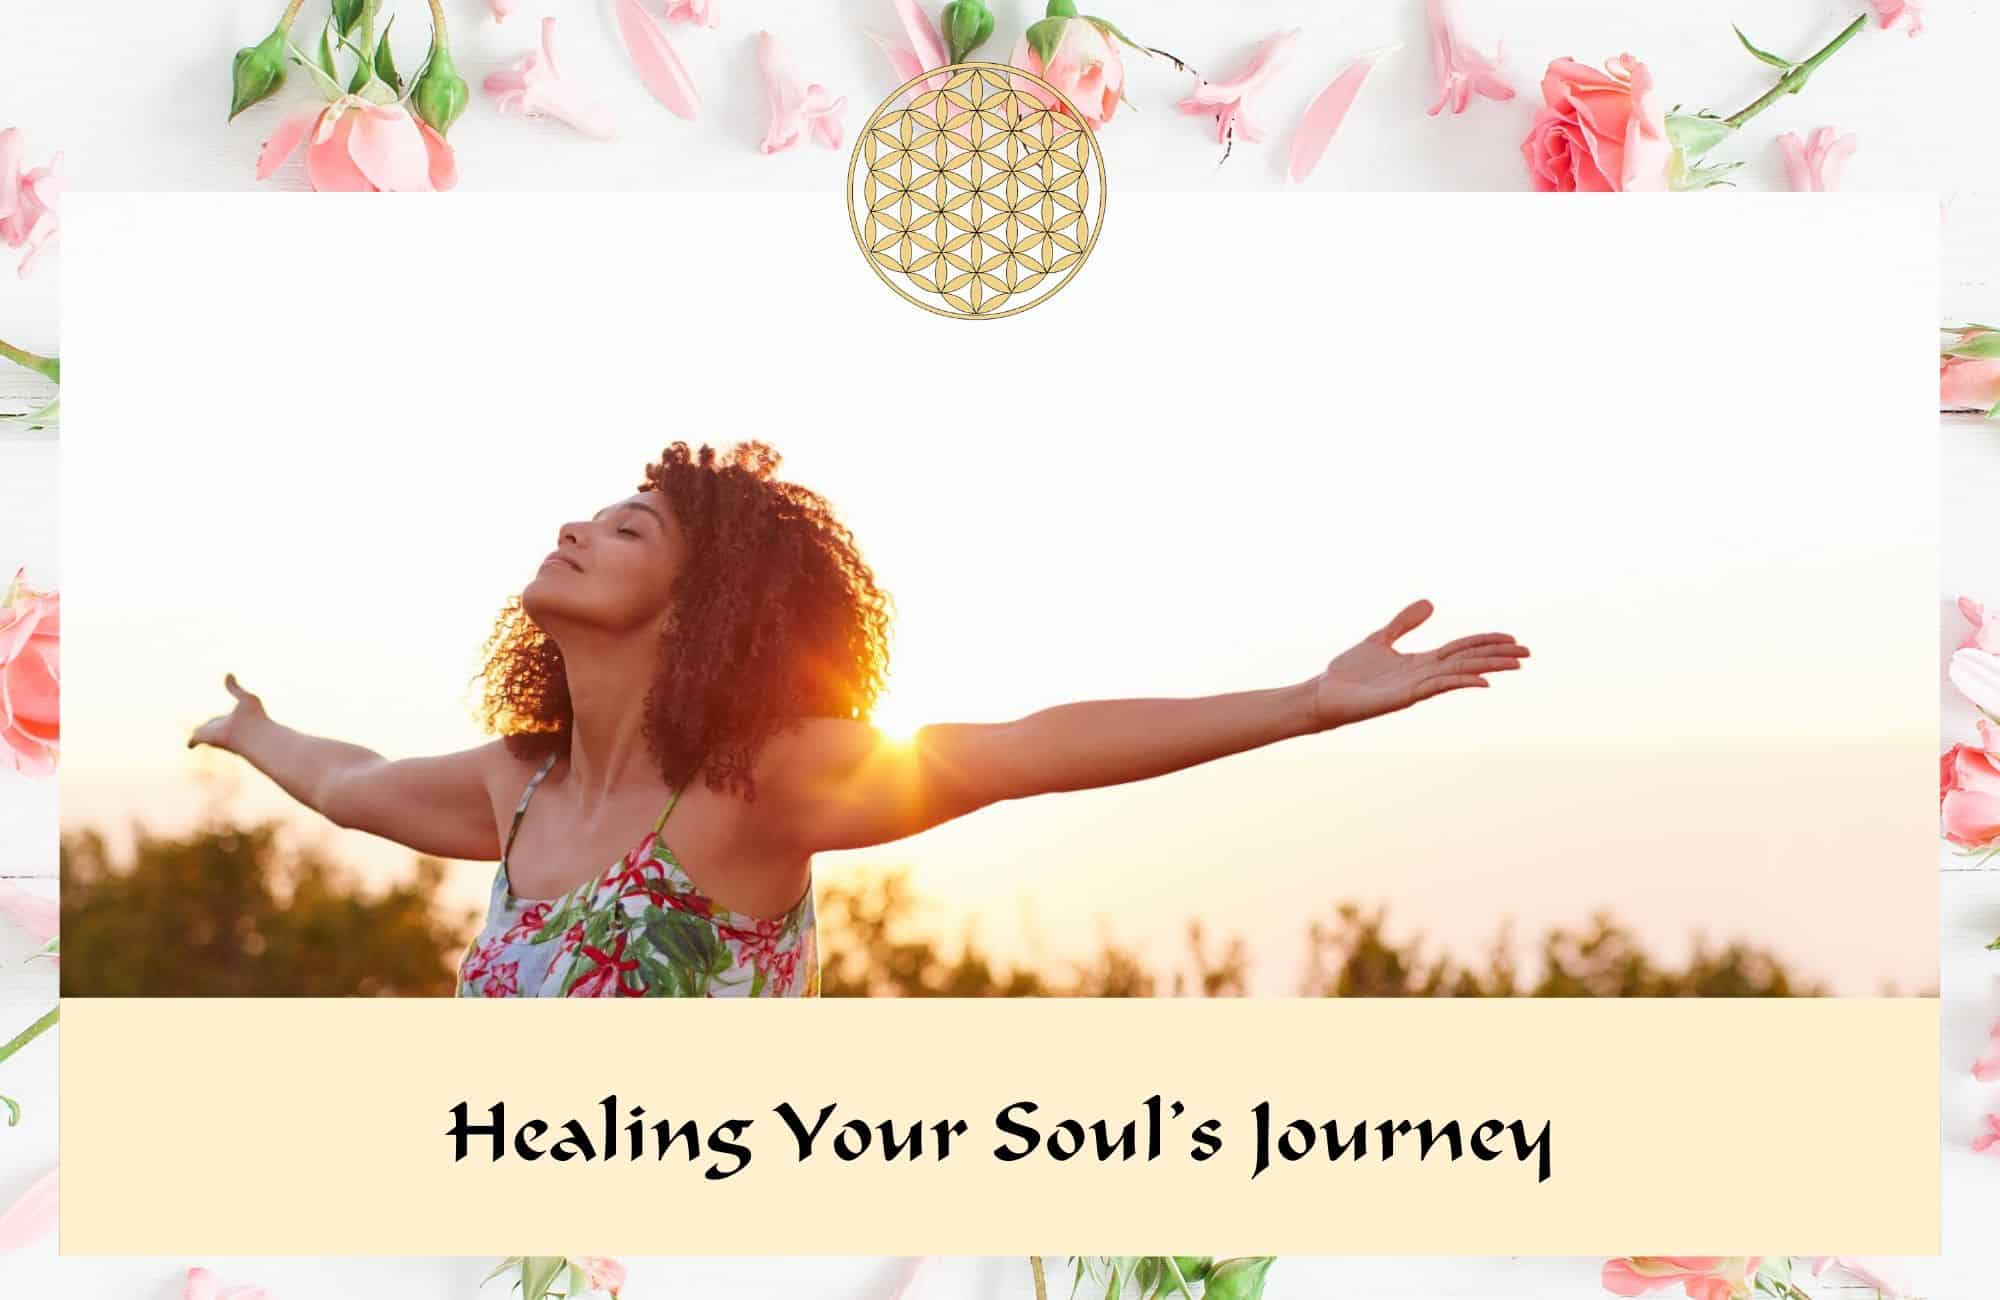 Healing your soul's journey - Flower Essences & Remedies - Flowers for Healing